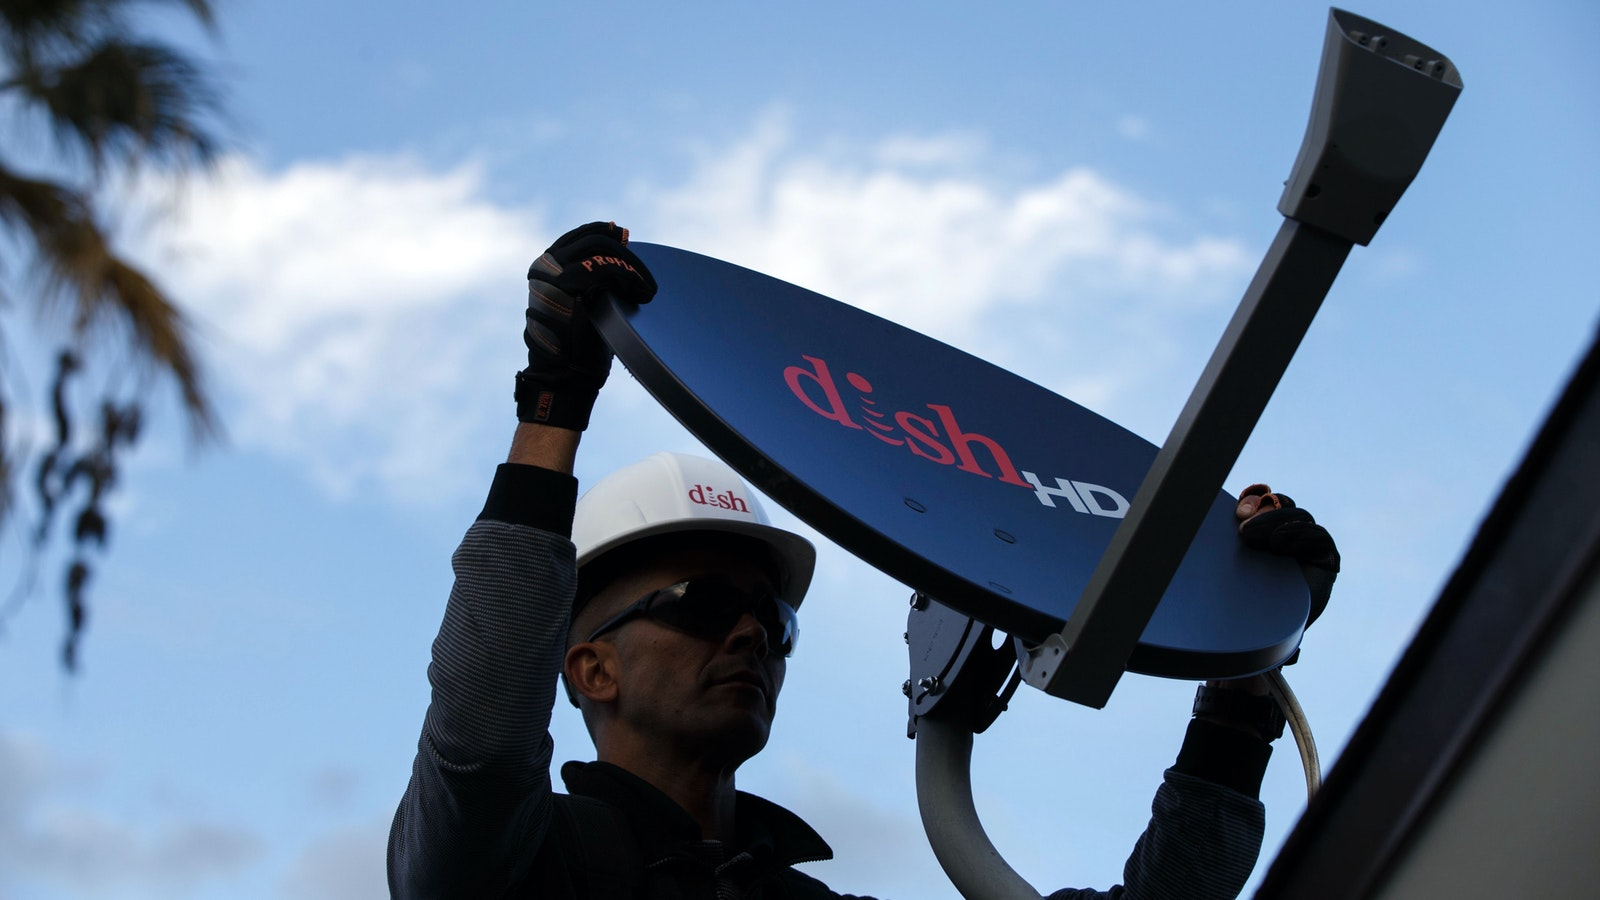 A technician working for Dish Network, which has begun offering marketing and customer support to other TV providers. Photo by Bloomberg